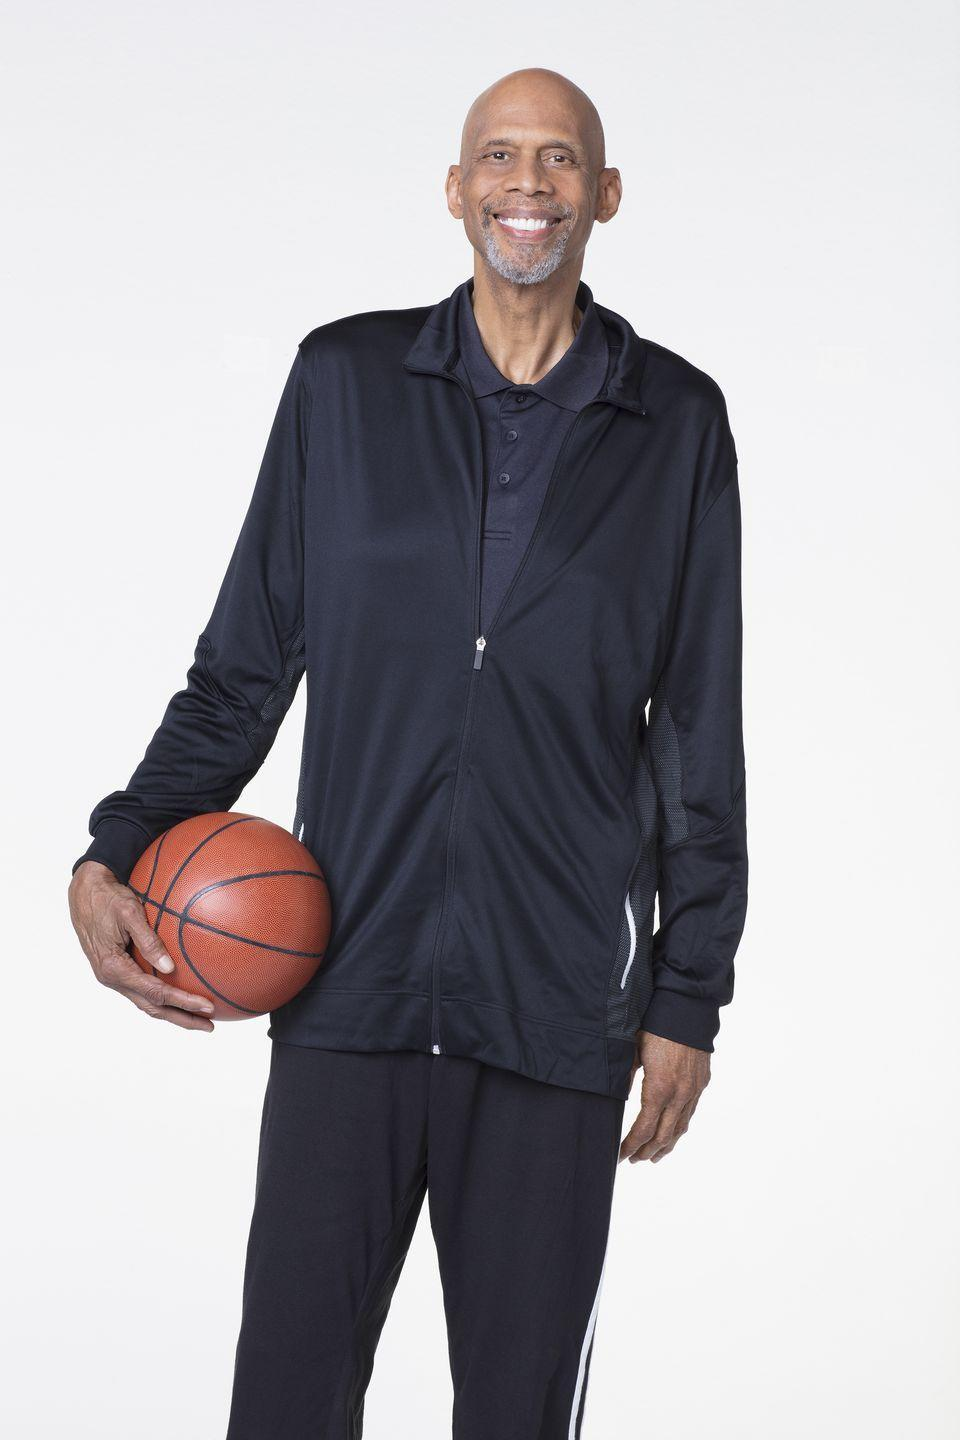 "<p>Kareem Adbul-Jabbar joined the team and <a href=""https://www.vanityfair.com/hollywood/2018/09/kareem-abdul-jabbar-veronica-mars"" rel=""nofollow noopener"" target=""_blank"" data-ylk=""slk:helped with the script"" class=""link rapid-noclick-resp"">helped with the script</a>. The NBA's all-time leading scorer was confirmed as a contributor <a href=""https://twitter.com/RobThomas/status/1044429232753979392"" rel=""nofollow noopener"" target=""_blank"" data-ylk=""slk:on Twitter"" class=""link rapid-noclick-resp"">on Twitter</a>.</p>"